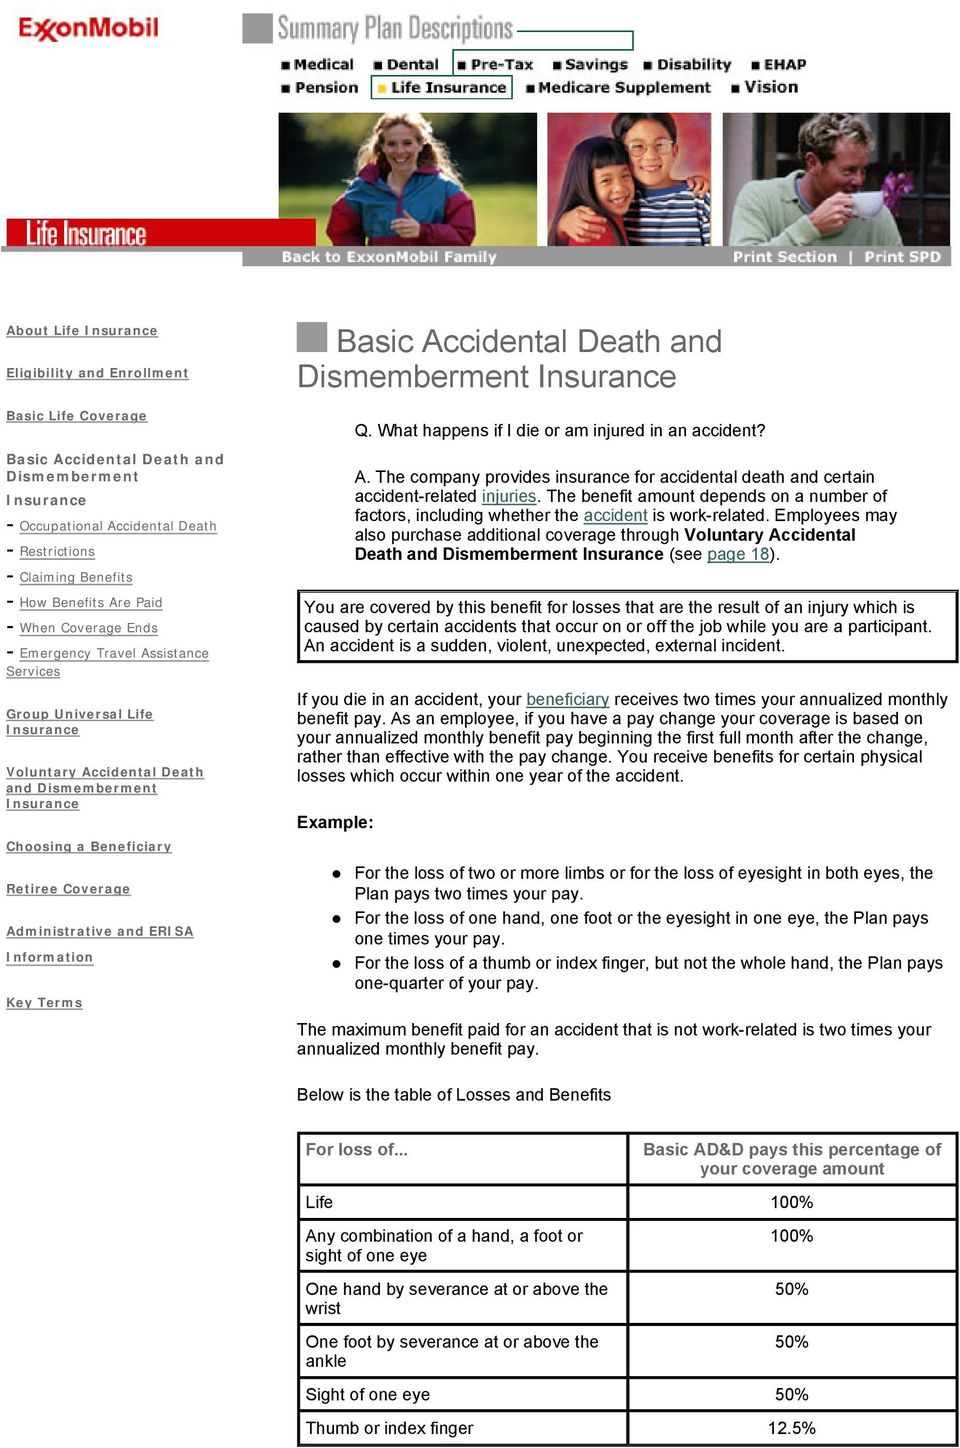 Terms Basic Accidental Death and Dismemberment Q. What happens if I die or am injured in an accident? A. The company provides insurance for accidental death and certain accident-related injuries.